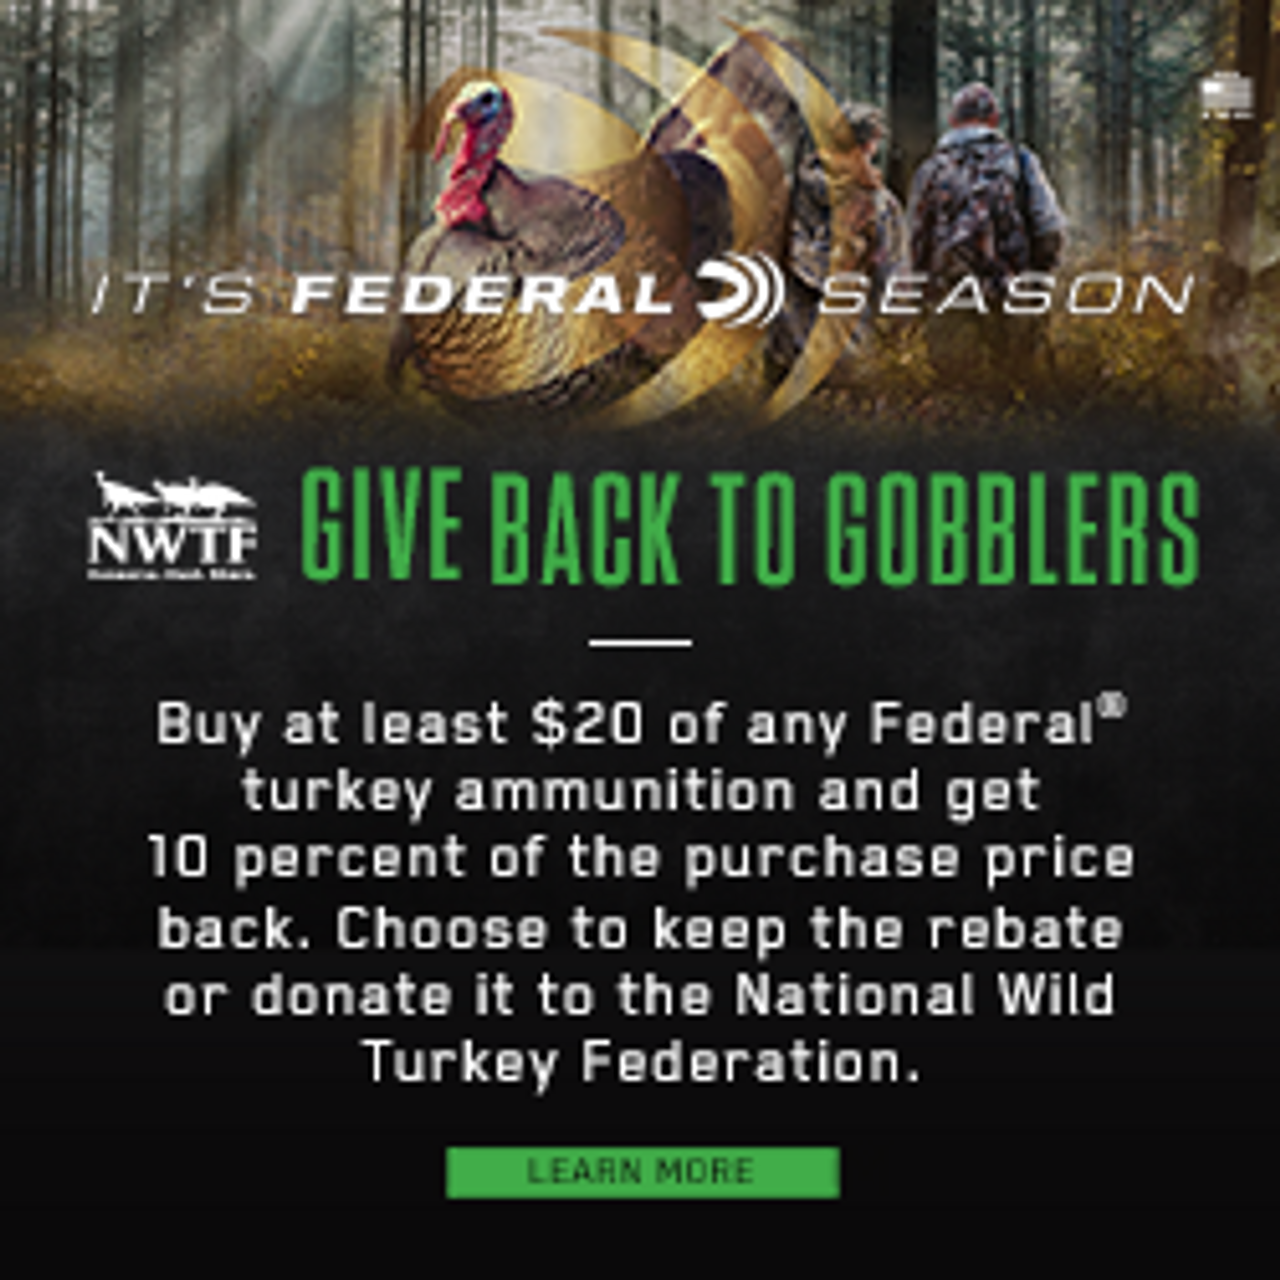 Federal Ammo Give Back to Gobblers Rebate